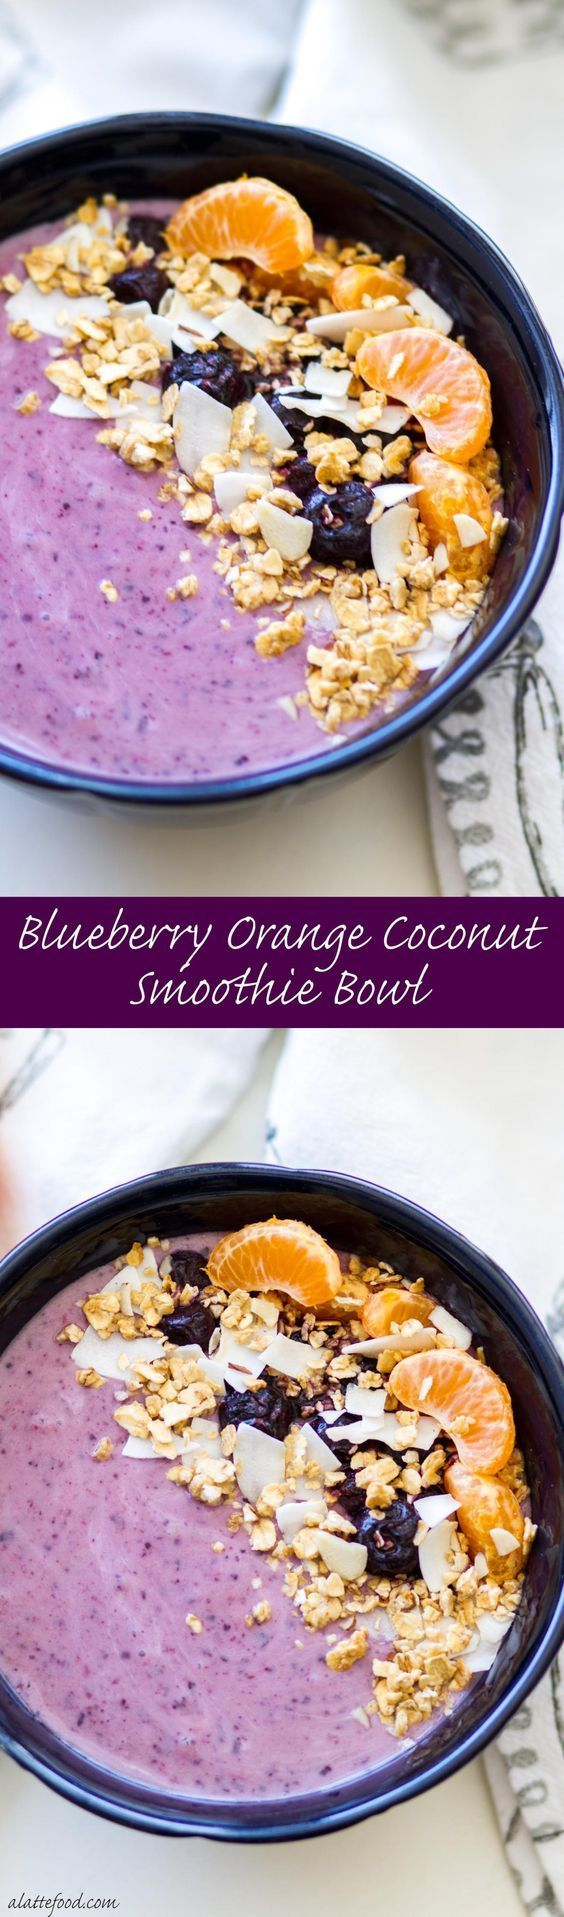 This sweet blueberry orange coconut smoothie bowl is perfect for breakfast, brunch, or afternoon snack. It's pretty much a bowl of Heaven. Plus, it's dairy-free, gluten-free, and vegan! #ad